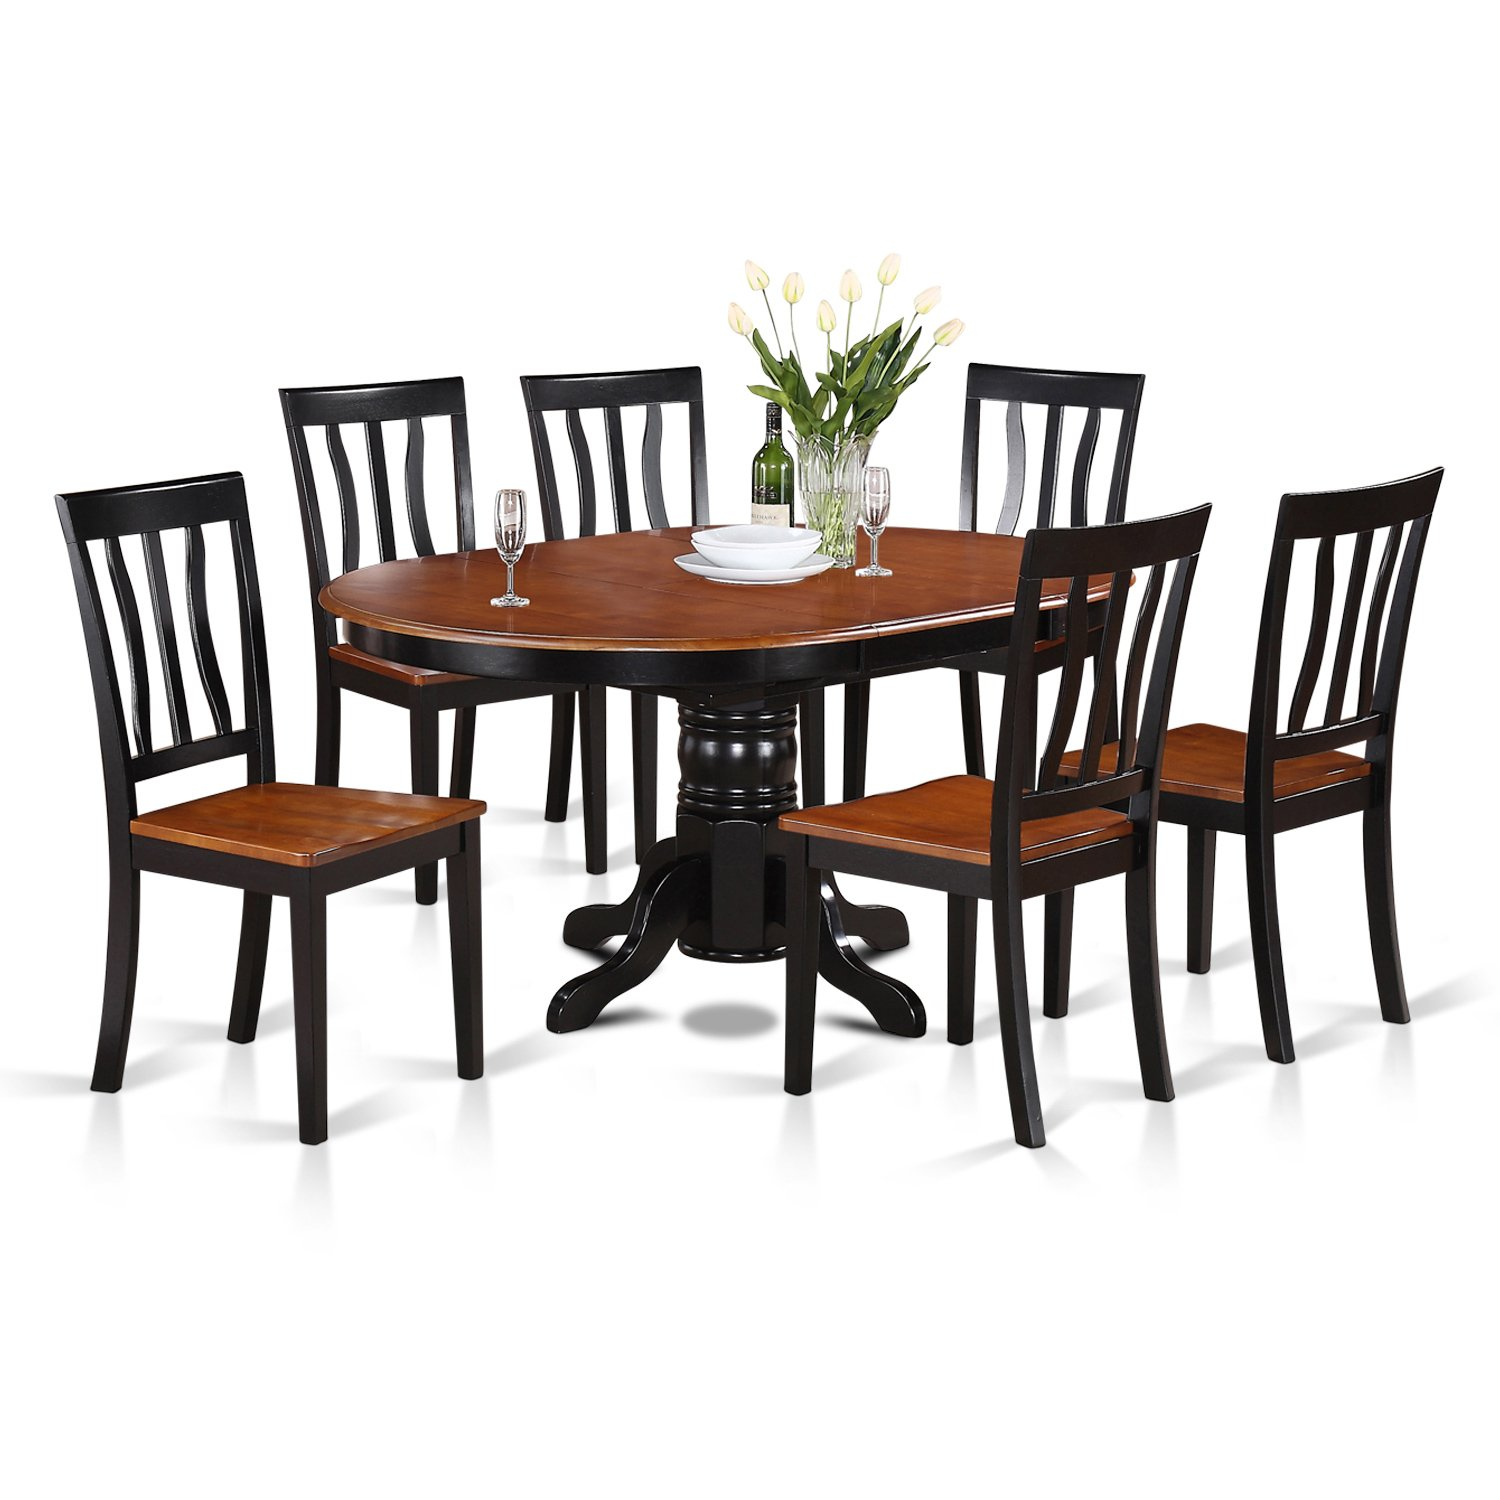 Amazoncom East West Furniture AVATBLKW Piece Dining Table - Black oval pedestal dining table